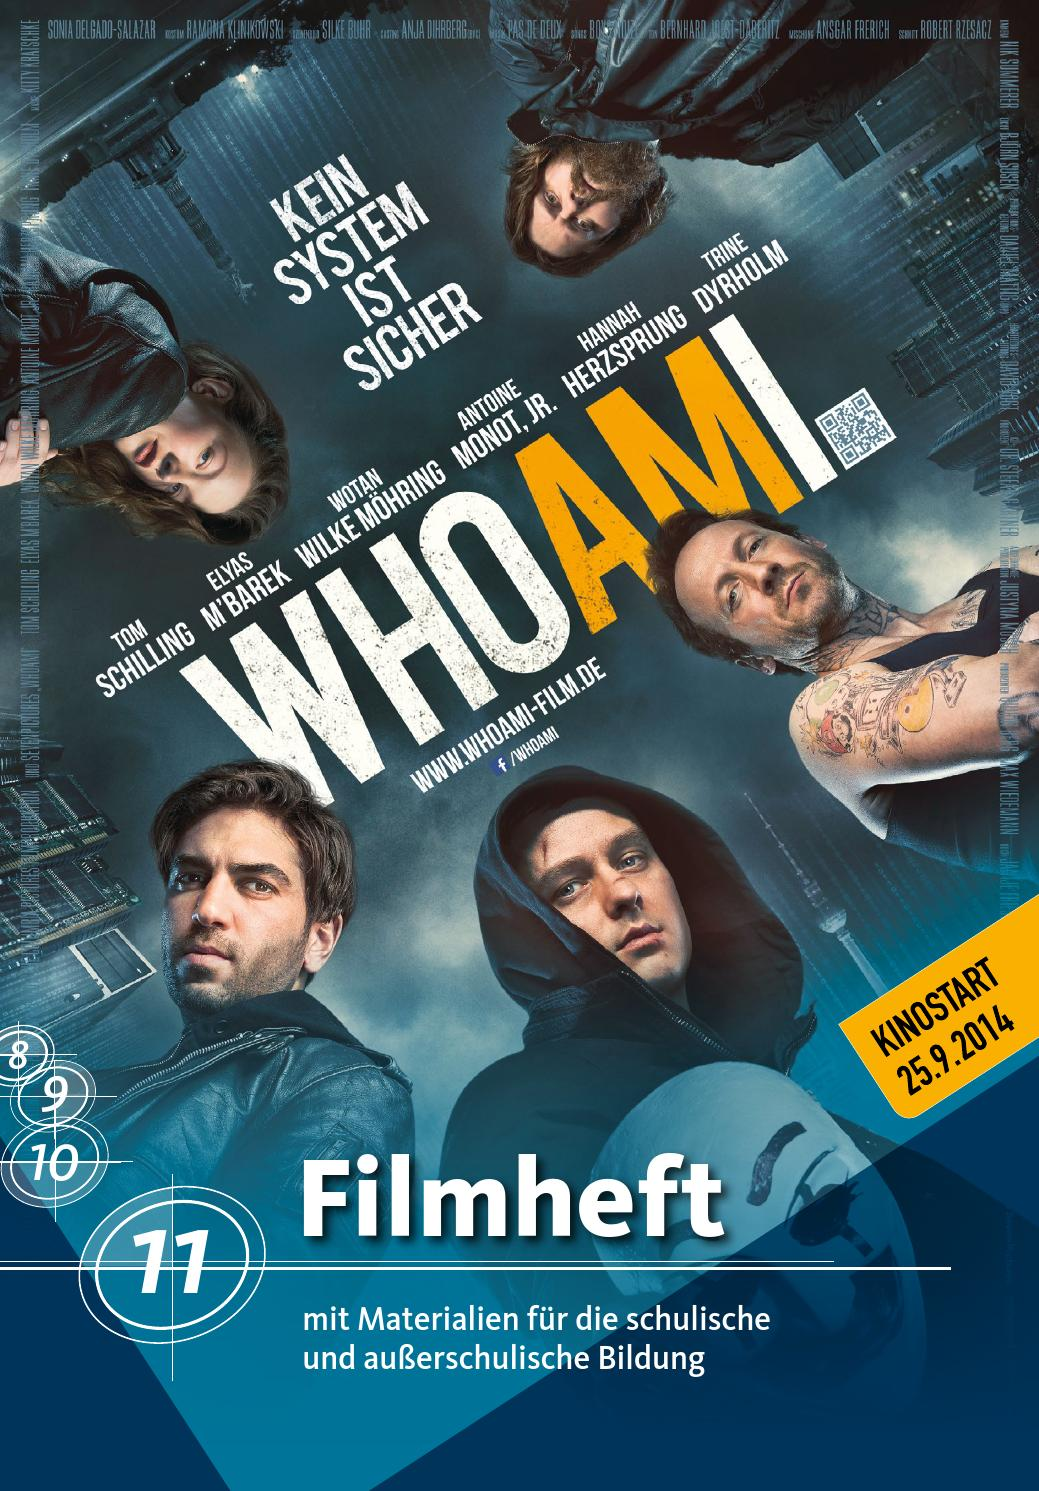 filmheft who am i by vision kino issuu. Black Bedroom Furniture Sets. Home Design Ideas